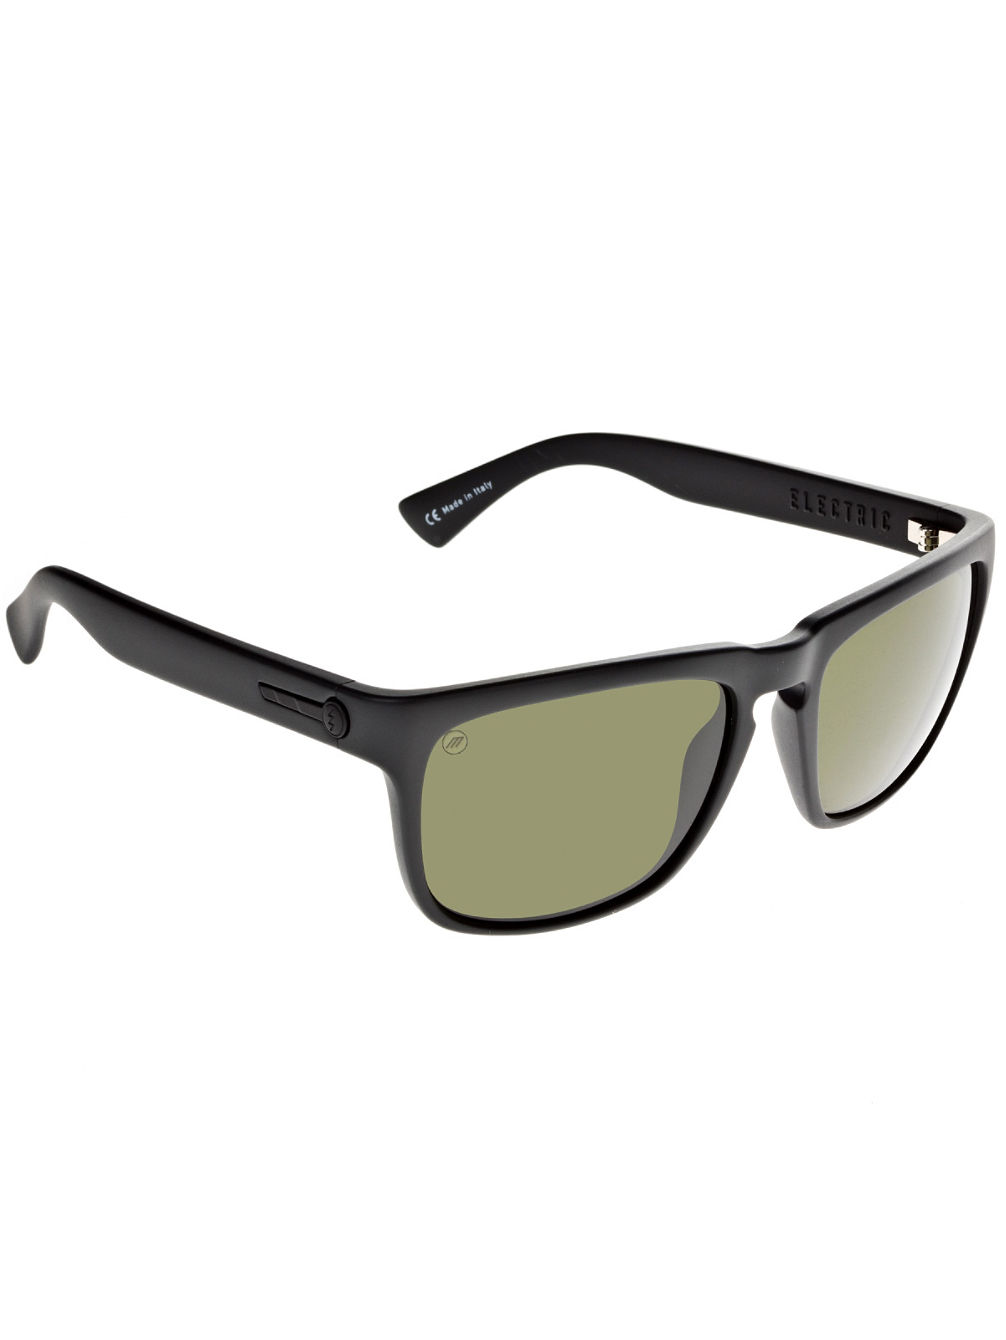 Knoxville Matte Black Sonnenbrille